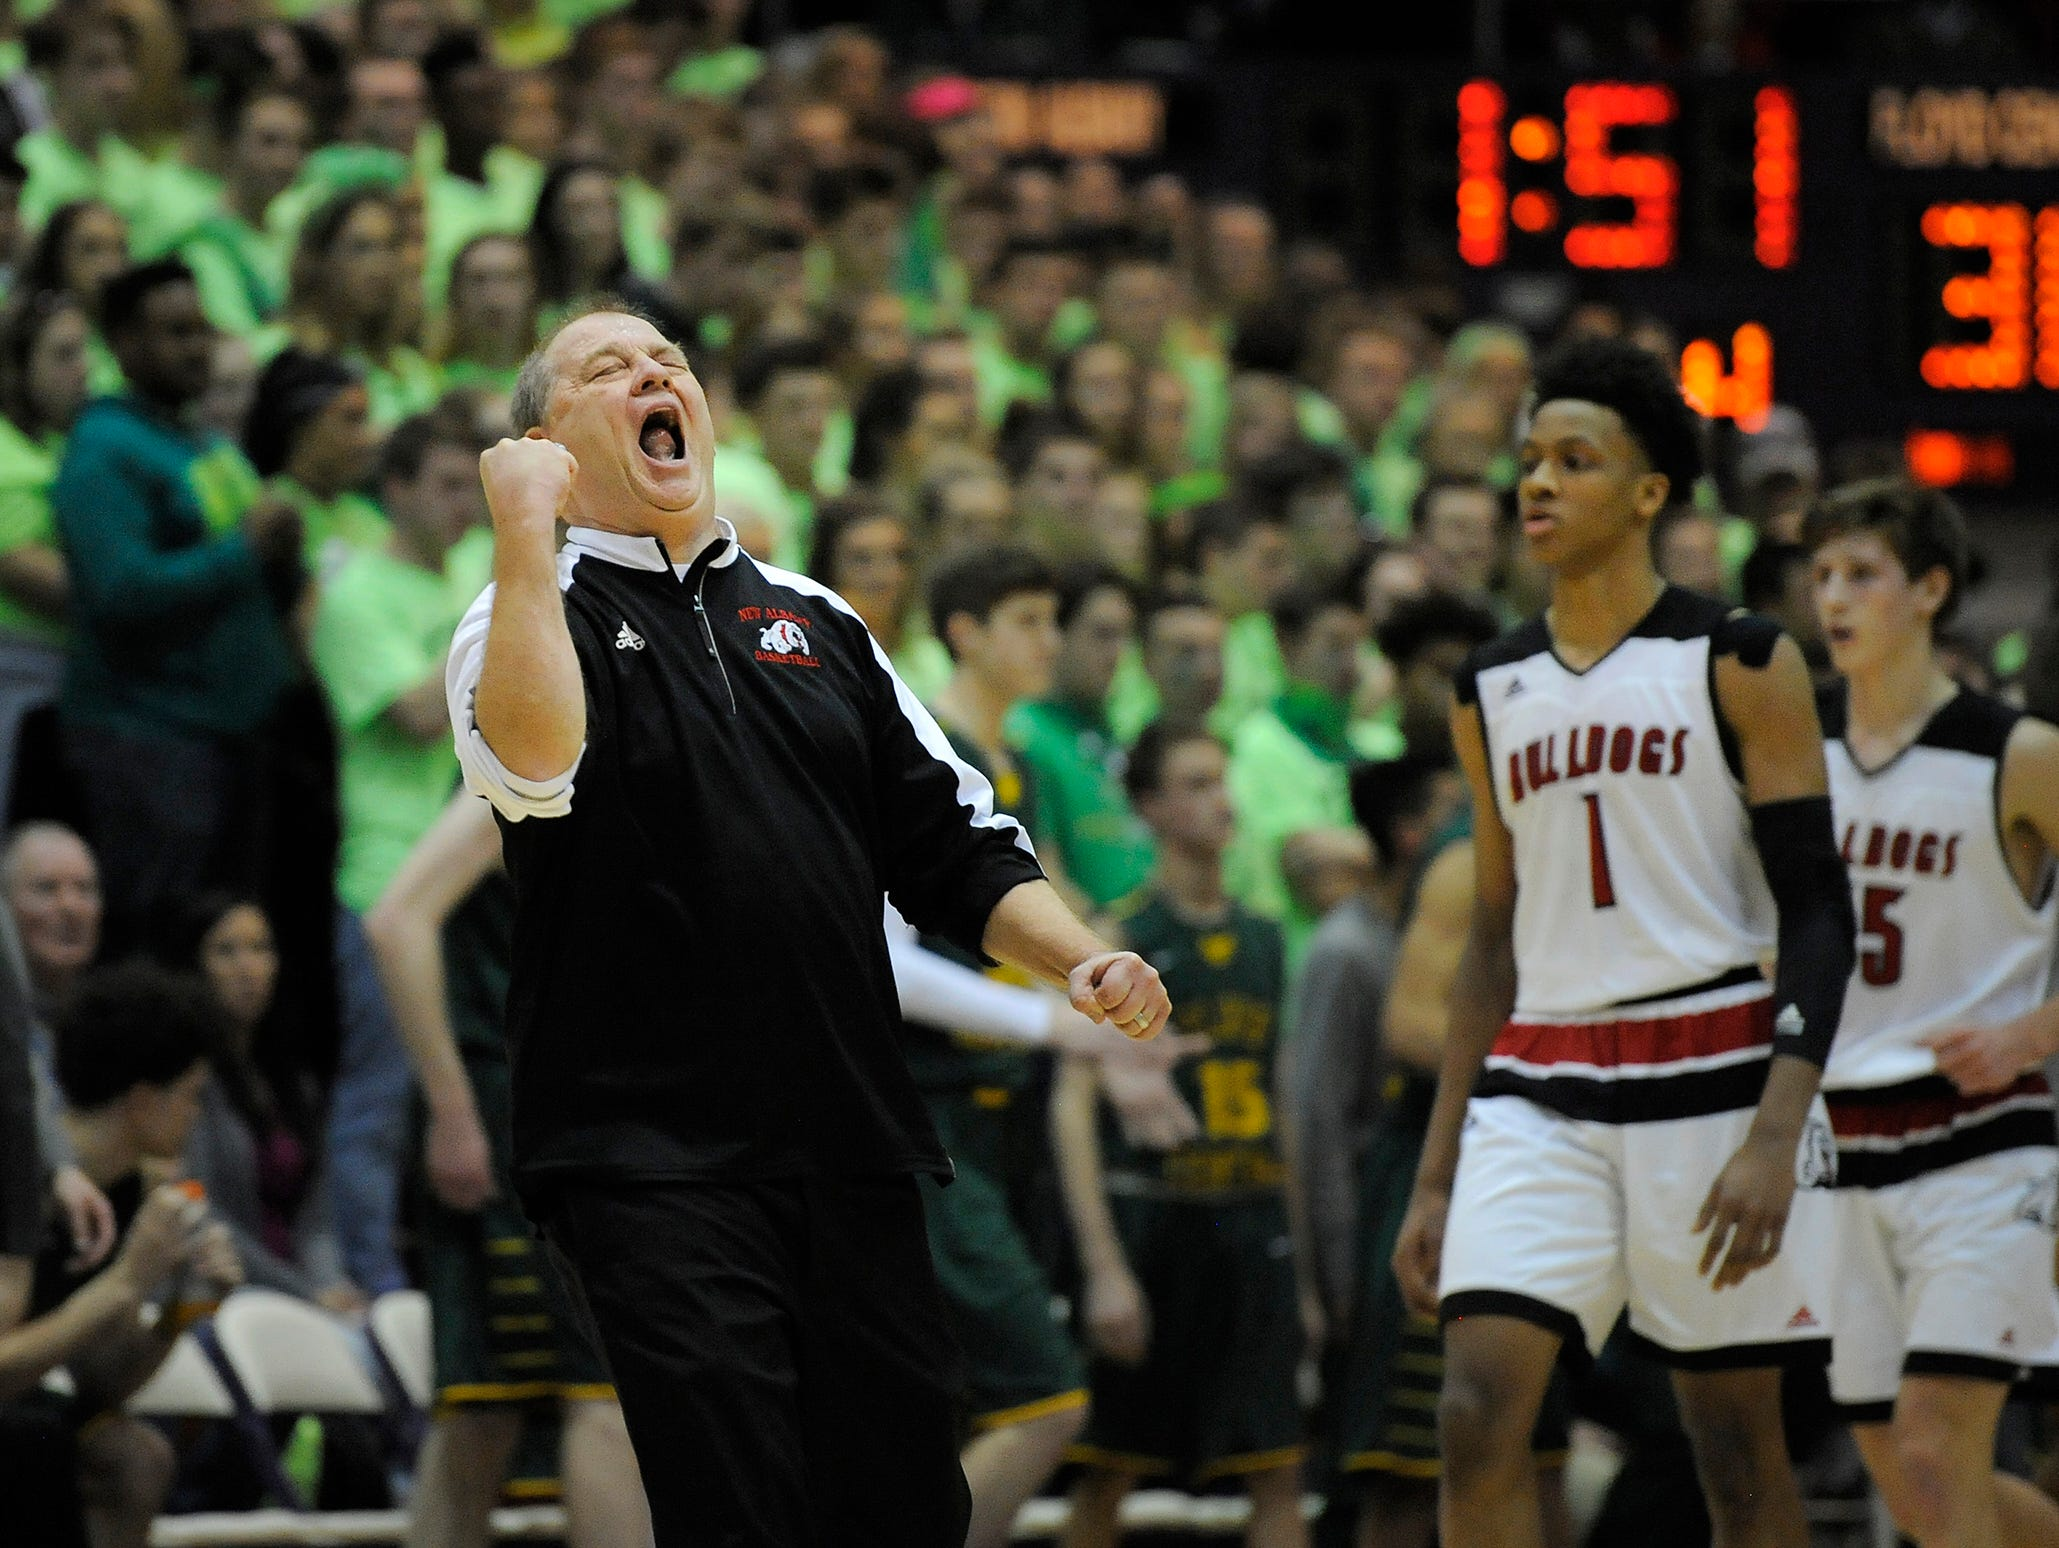 New Albany head coach Jim Shannon (left) celebrates a big shot with only minutes left of the 2017 Boys Class 4A Sectional 15 Final against Floyd Central at Seymour High School. New Albany won 54-38. (Photo by David Lee Hartlage, Special to The Courier-Journal) Mar. 4, 2017